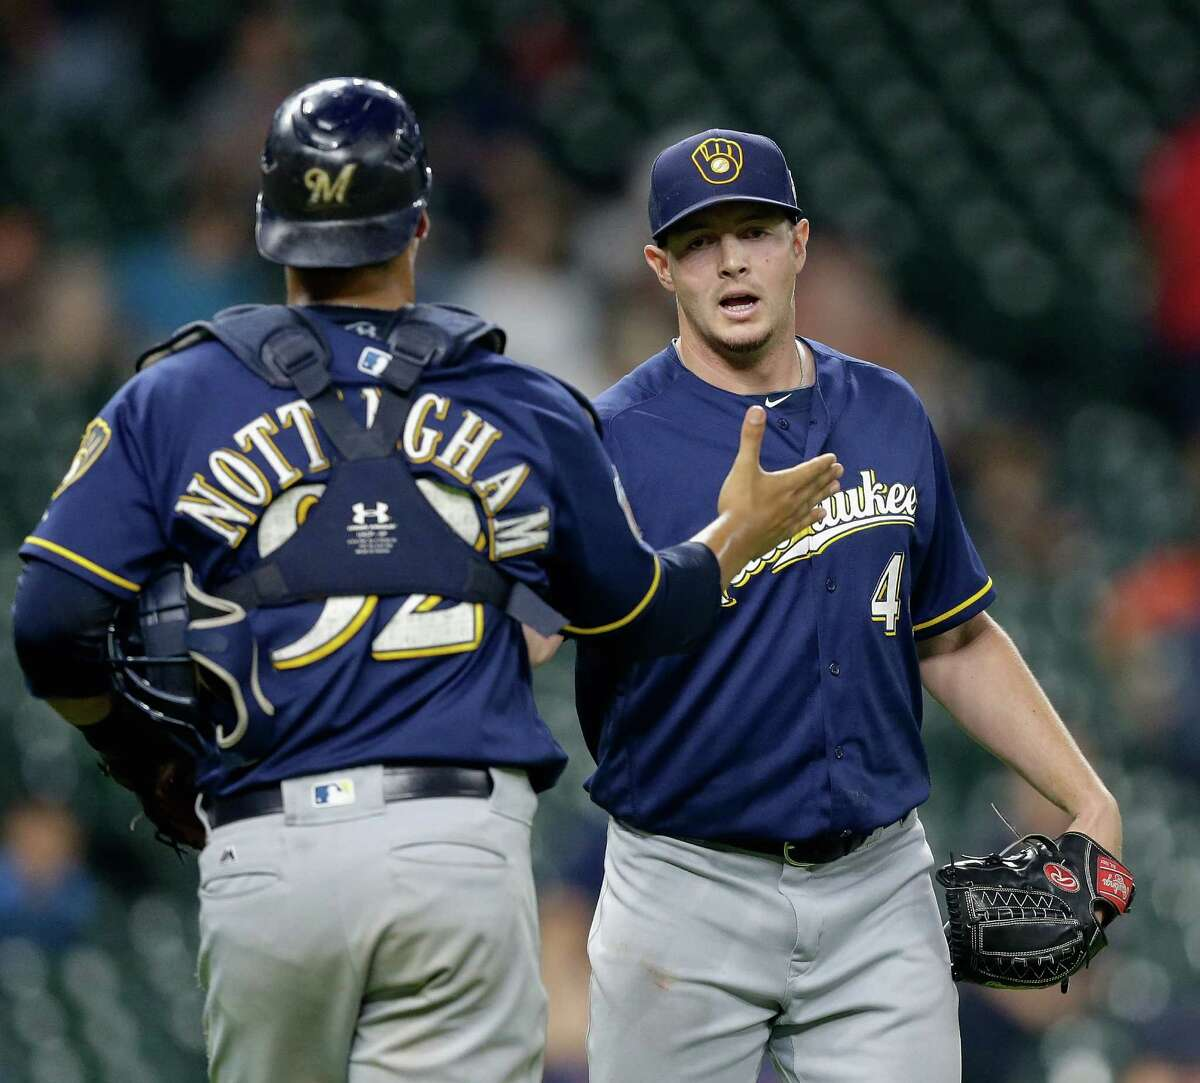 Milwaukee Brewers' Corey Knebel (46) shakes hands with catcher Jacob Nottingham (92) after the final out against the Houston Astros during a spring training baseball game Thursday, March 31, 2016, in Houston. Milwaukee won 6-1.